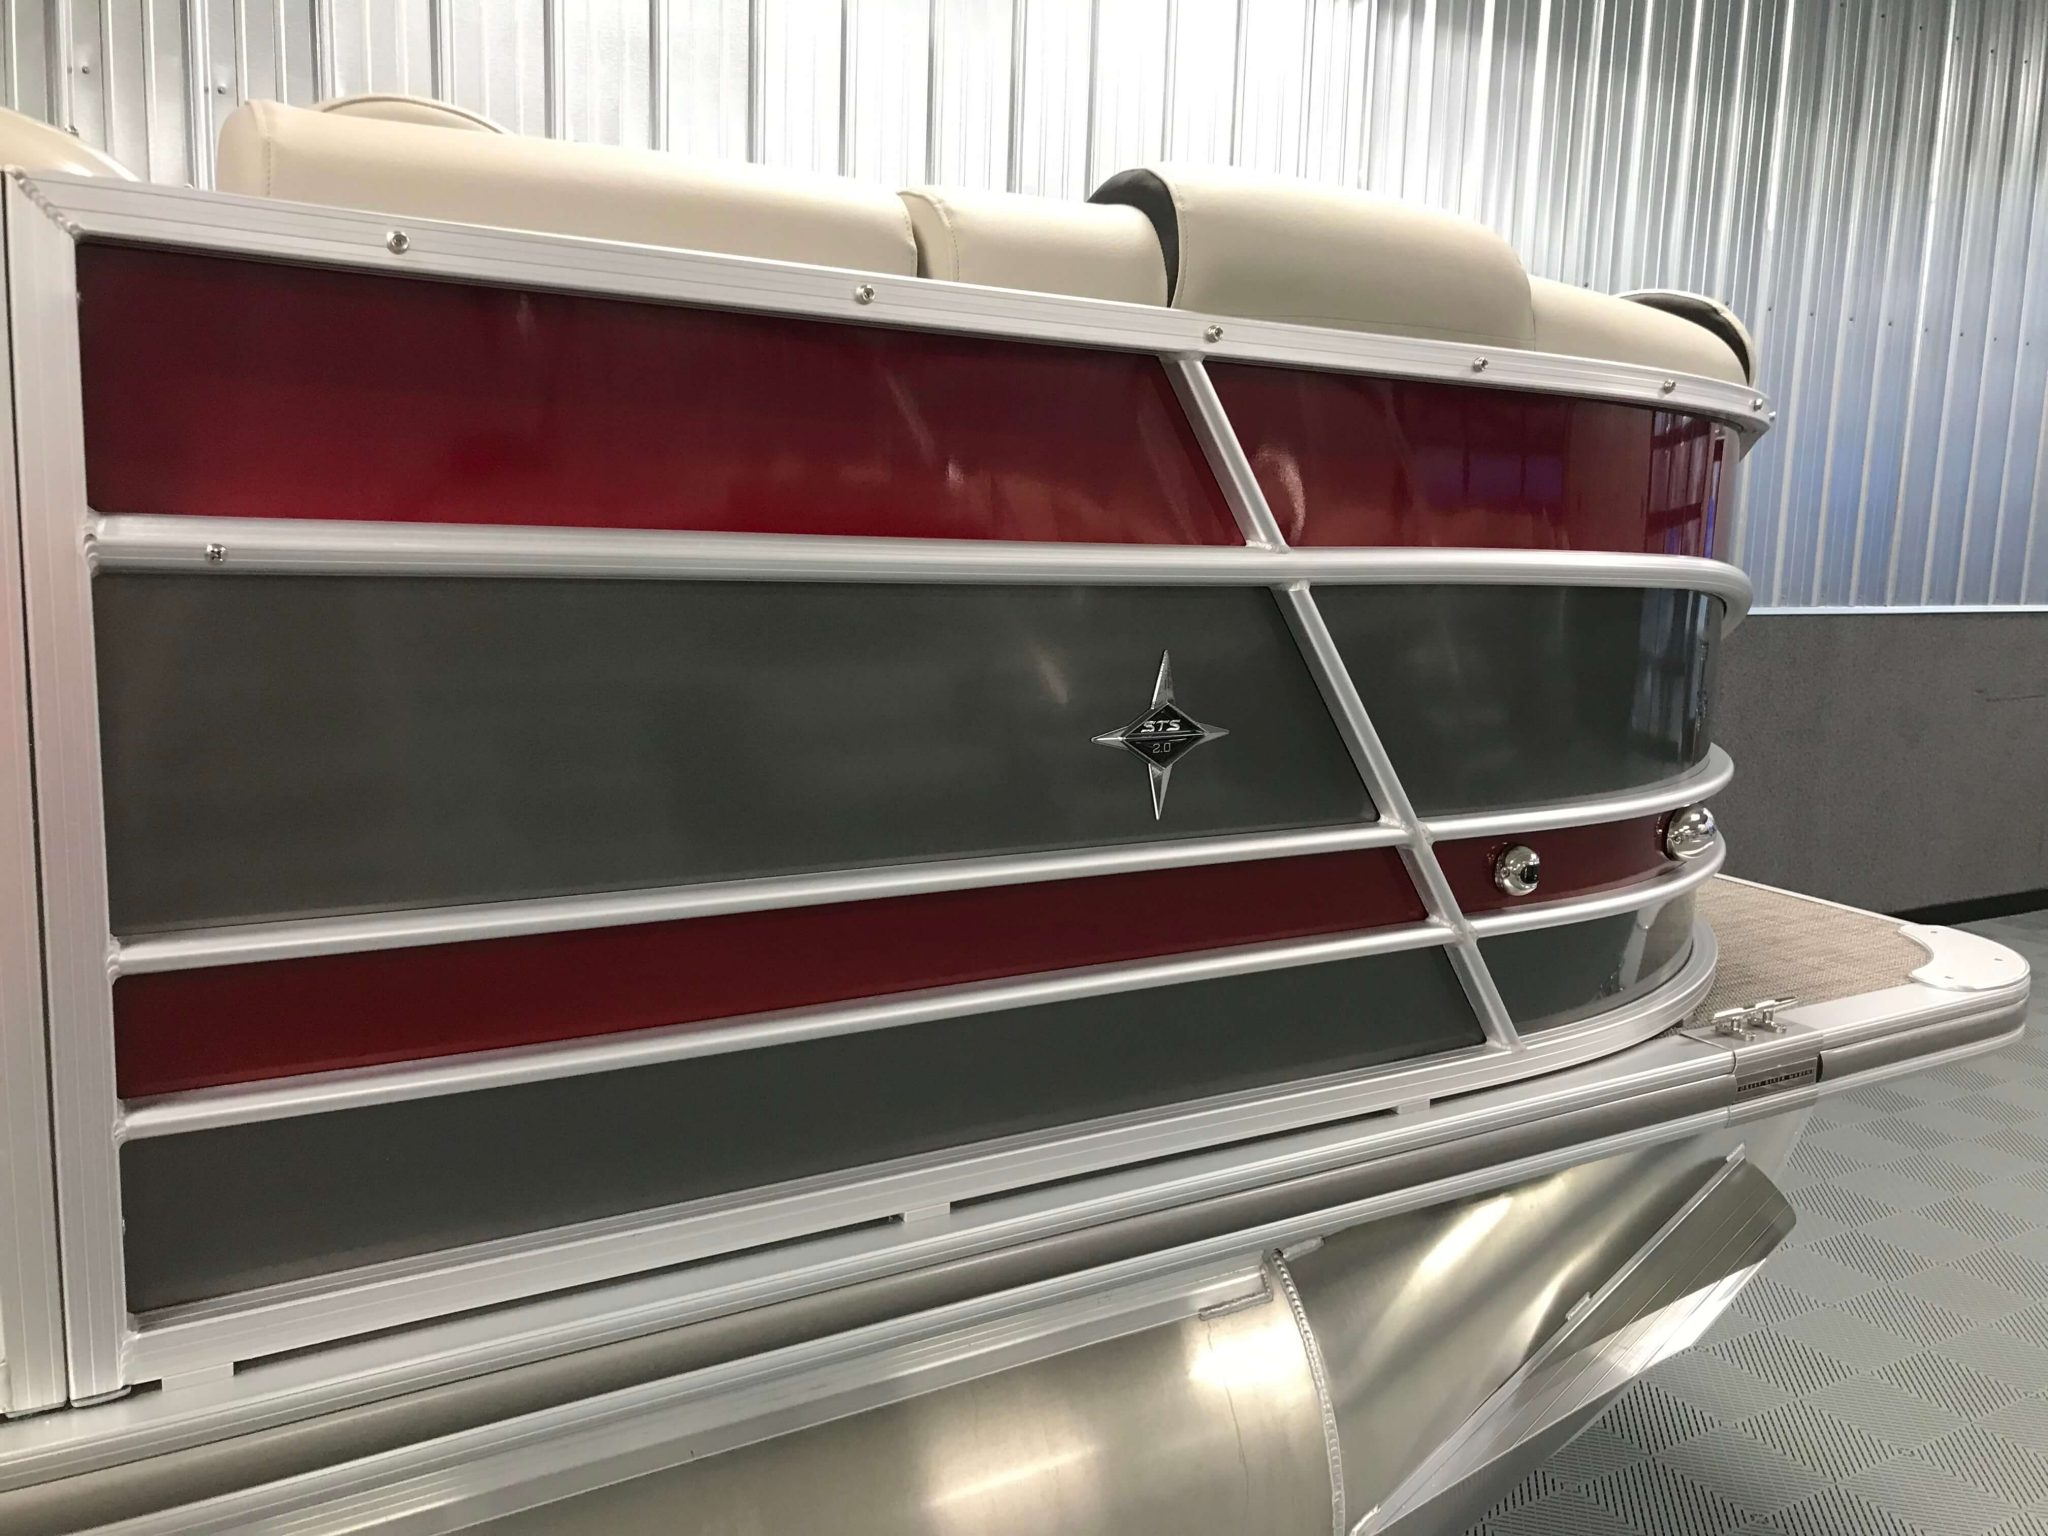 2019 Berkshire 23RFX STS Deluxe Burgandy And Charcoal 3